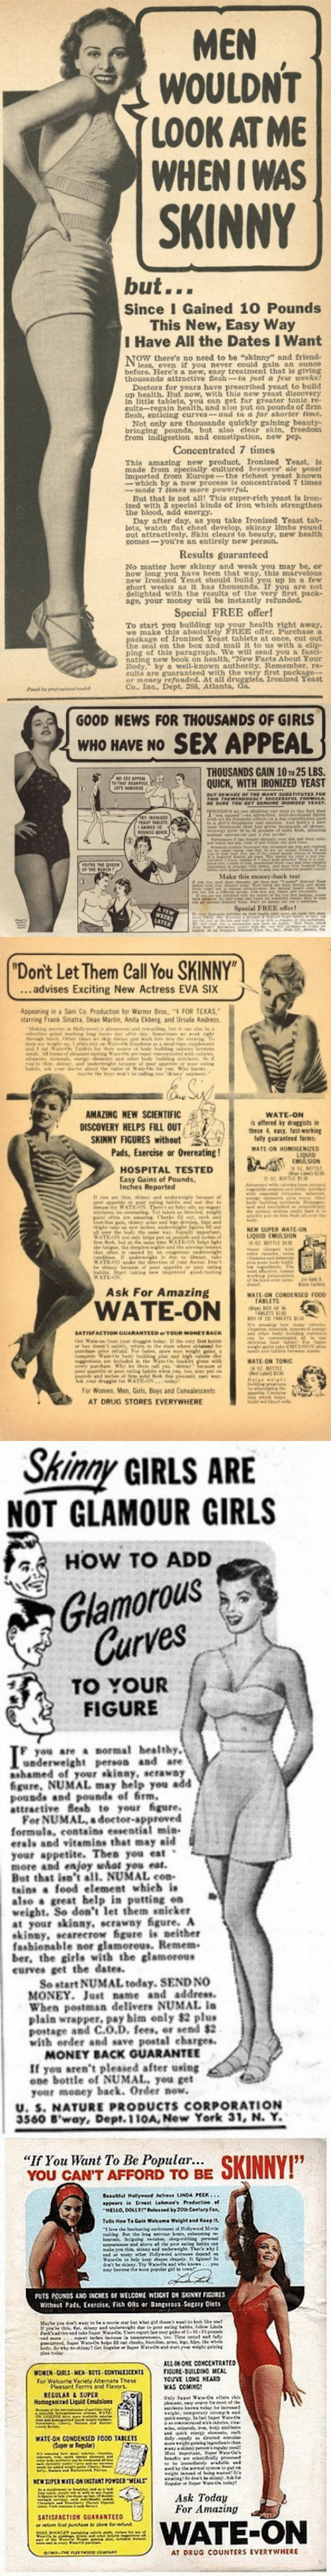 """homogenized: MEN  WOULDNT  LOOK AT ME  WHEN I WAS  SKINNY  but...  Since I Gained 10 Pounds  This New, Easy Way  I Have All the Dates I Want  less, even if you never could gain an ounce  before. Here's a new, easy treatment that is gl  thousands attractive flesh-in just a few weeks  Doctors for years have prescribed yeast to build  up health. But now, with this new yeast discovery  can get far greater tonic re-  sults-regain health, and also put on pounds of firm  lesh, enticing curves-and in a far shorter time  in little tablets  Not only are thousands quiekly gaining beauty-  bringing pounds, but also clear skin, freedom  from indigestion and constipation, new pep  Concentrated 7 times  This amazing new product, Ironized Yeast, is  made from specially cultured breteers ale yeast  imported from Europe- the richest yeast known  which by a new process is concentrated 7 times  --nade times รnore poo erful.  But that is not all! This super-rich yeast is iron-  ized with 3 special kinds of iron which strengthen  the blood, add energy  Day after day, as you take Ironized Yeast tab  lets, watch flat chest develop, skinny limbs round  out attractively. Skin clears to beauty, new health  comes-you're an entirely new person.  Results guaranteed  No matter how skinny and weak you may be, or  how long you have been that way, this marvelous  new Ironized Yeast should build you up in a few  short weeks as it has thousands. If you are not  delighted with the results of the very first pack-  age, your money will be instantl  Special FREE offer!  To start you building up  we make this absolutely FREE offer. Purchase a  health right away  e of Ironized Yeast tablets at once, cut out  seal on the box and mail it to us with a clip-  ping of this paragraph. We will send you a fasci-  nating new book on health, """"New Facts About Your  Body,"""" by a well-known authority. Remember, re-  sults are guaranteed with the very first packa  or money refunded. At all dru  Co. Inc., Dept. 288, Atlant"""